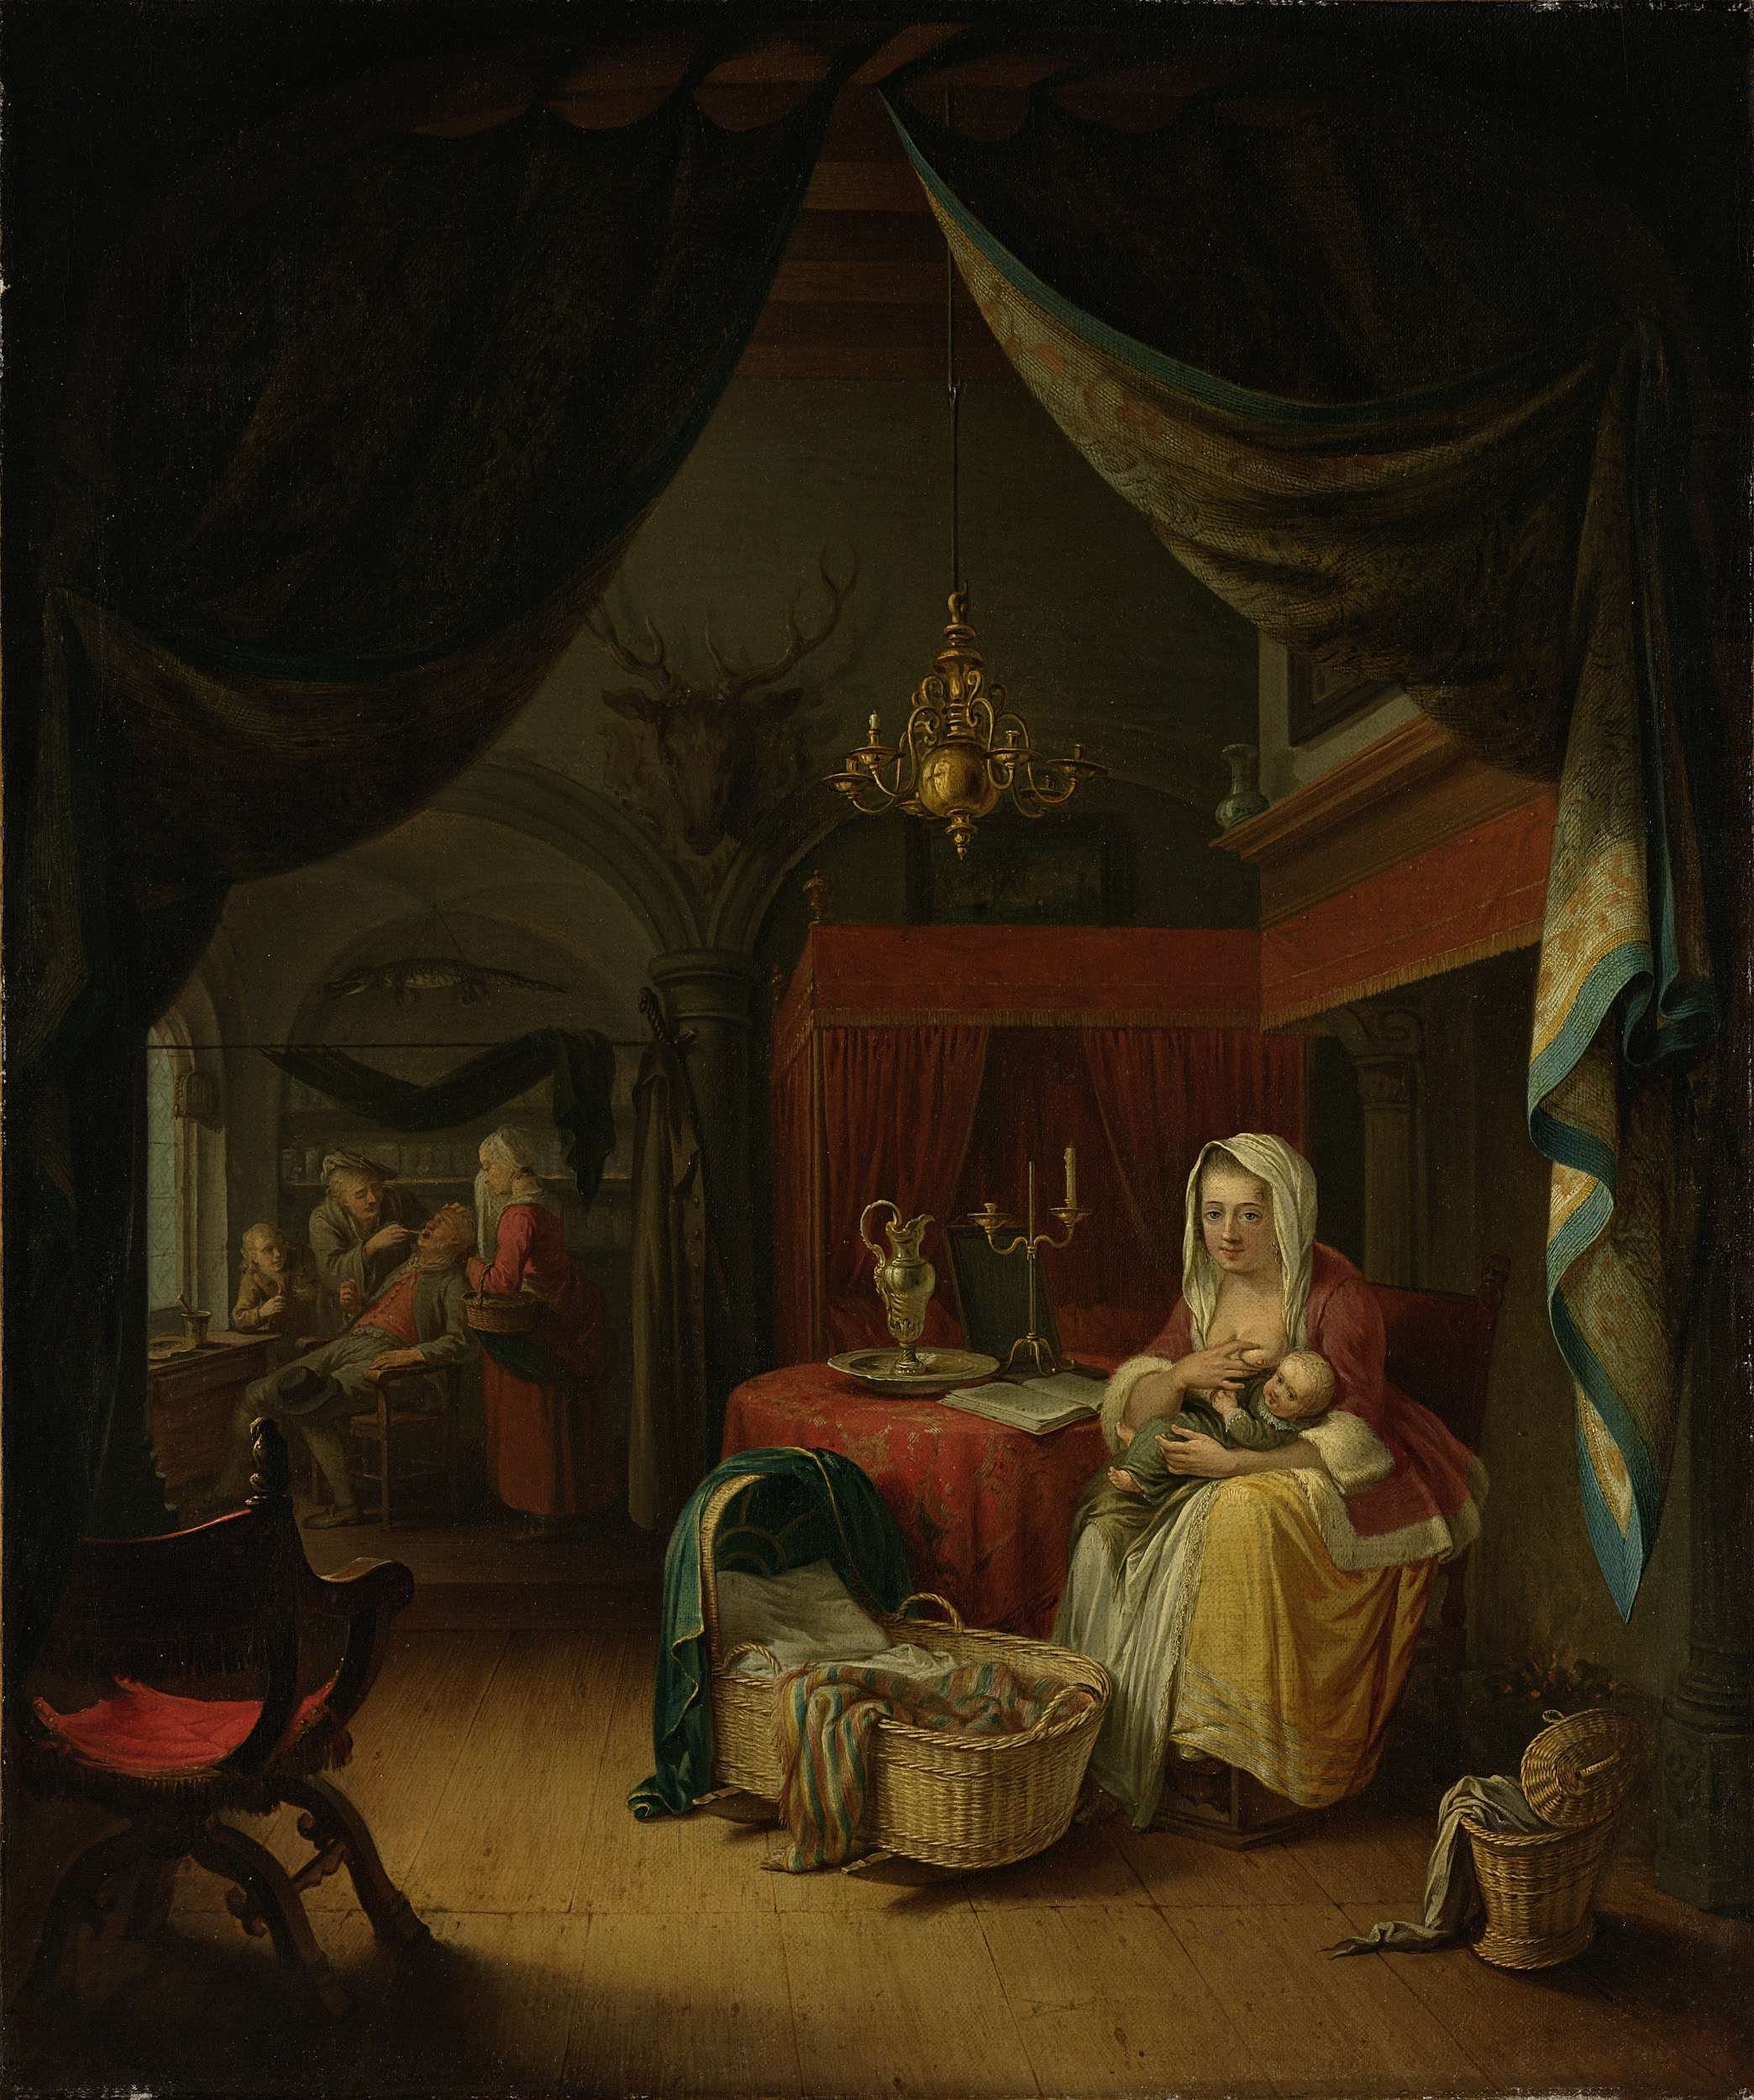 Willem Joseph Laquy after Gerard Dou, The Lying-in Chamber, ca. 1770Rijksmuseum Amsterdam